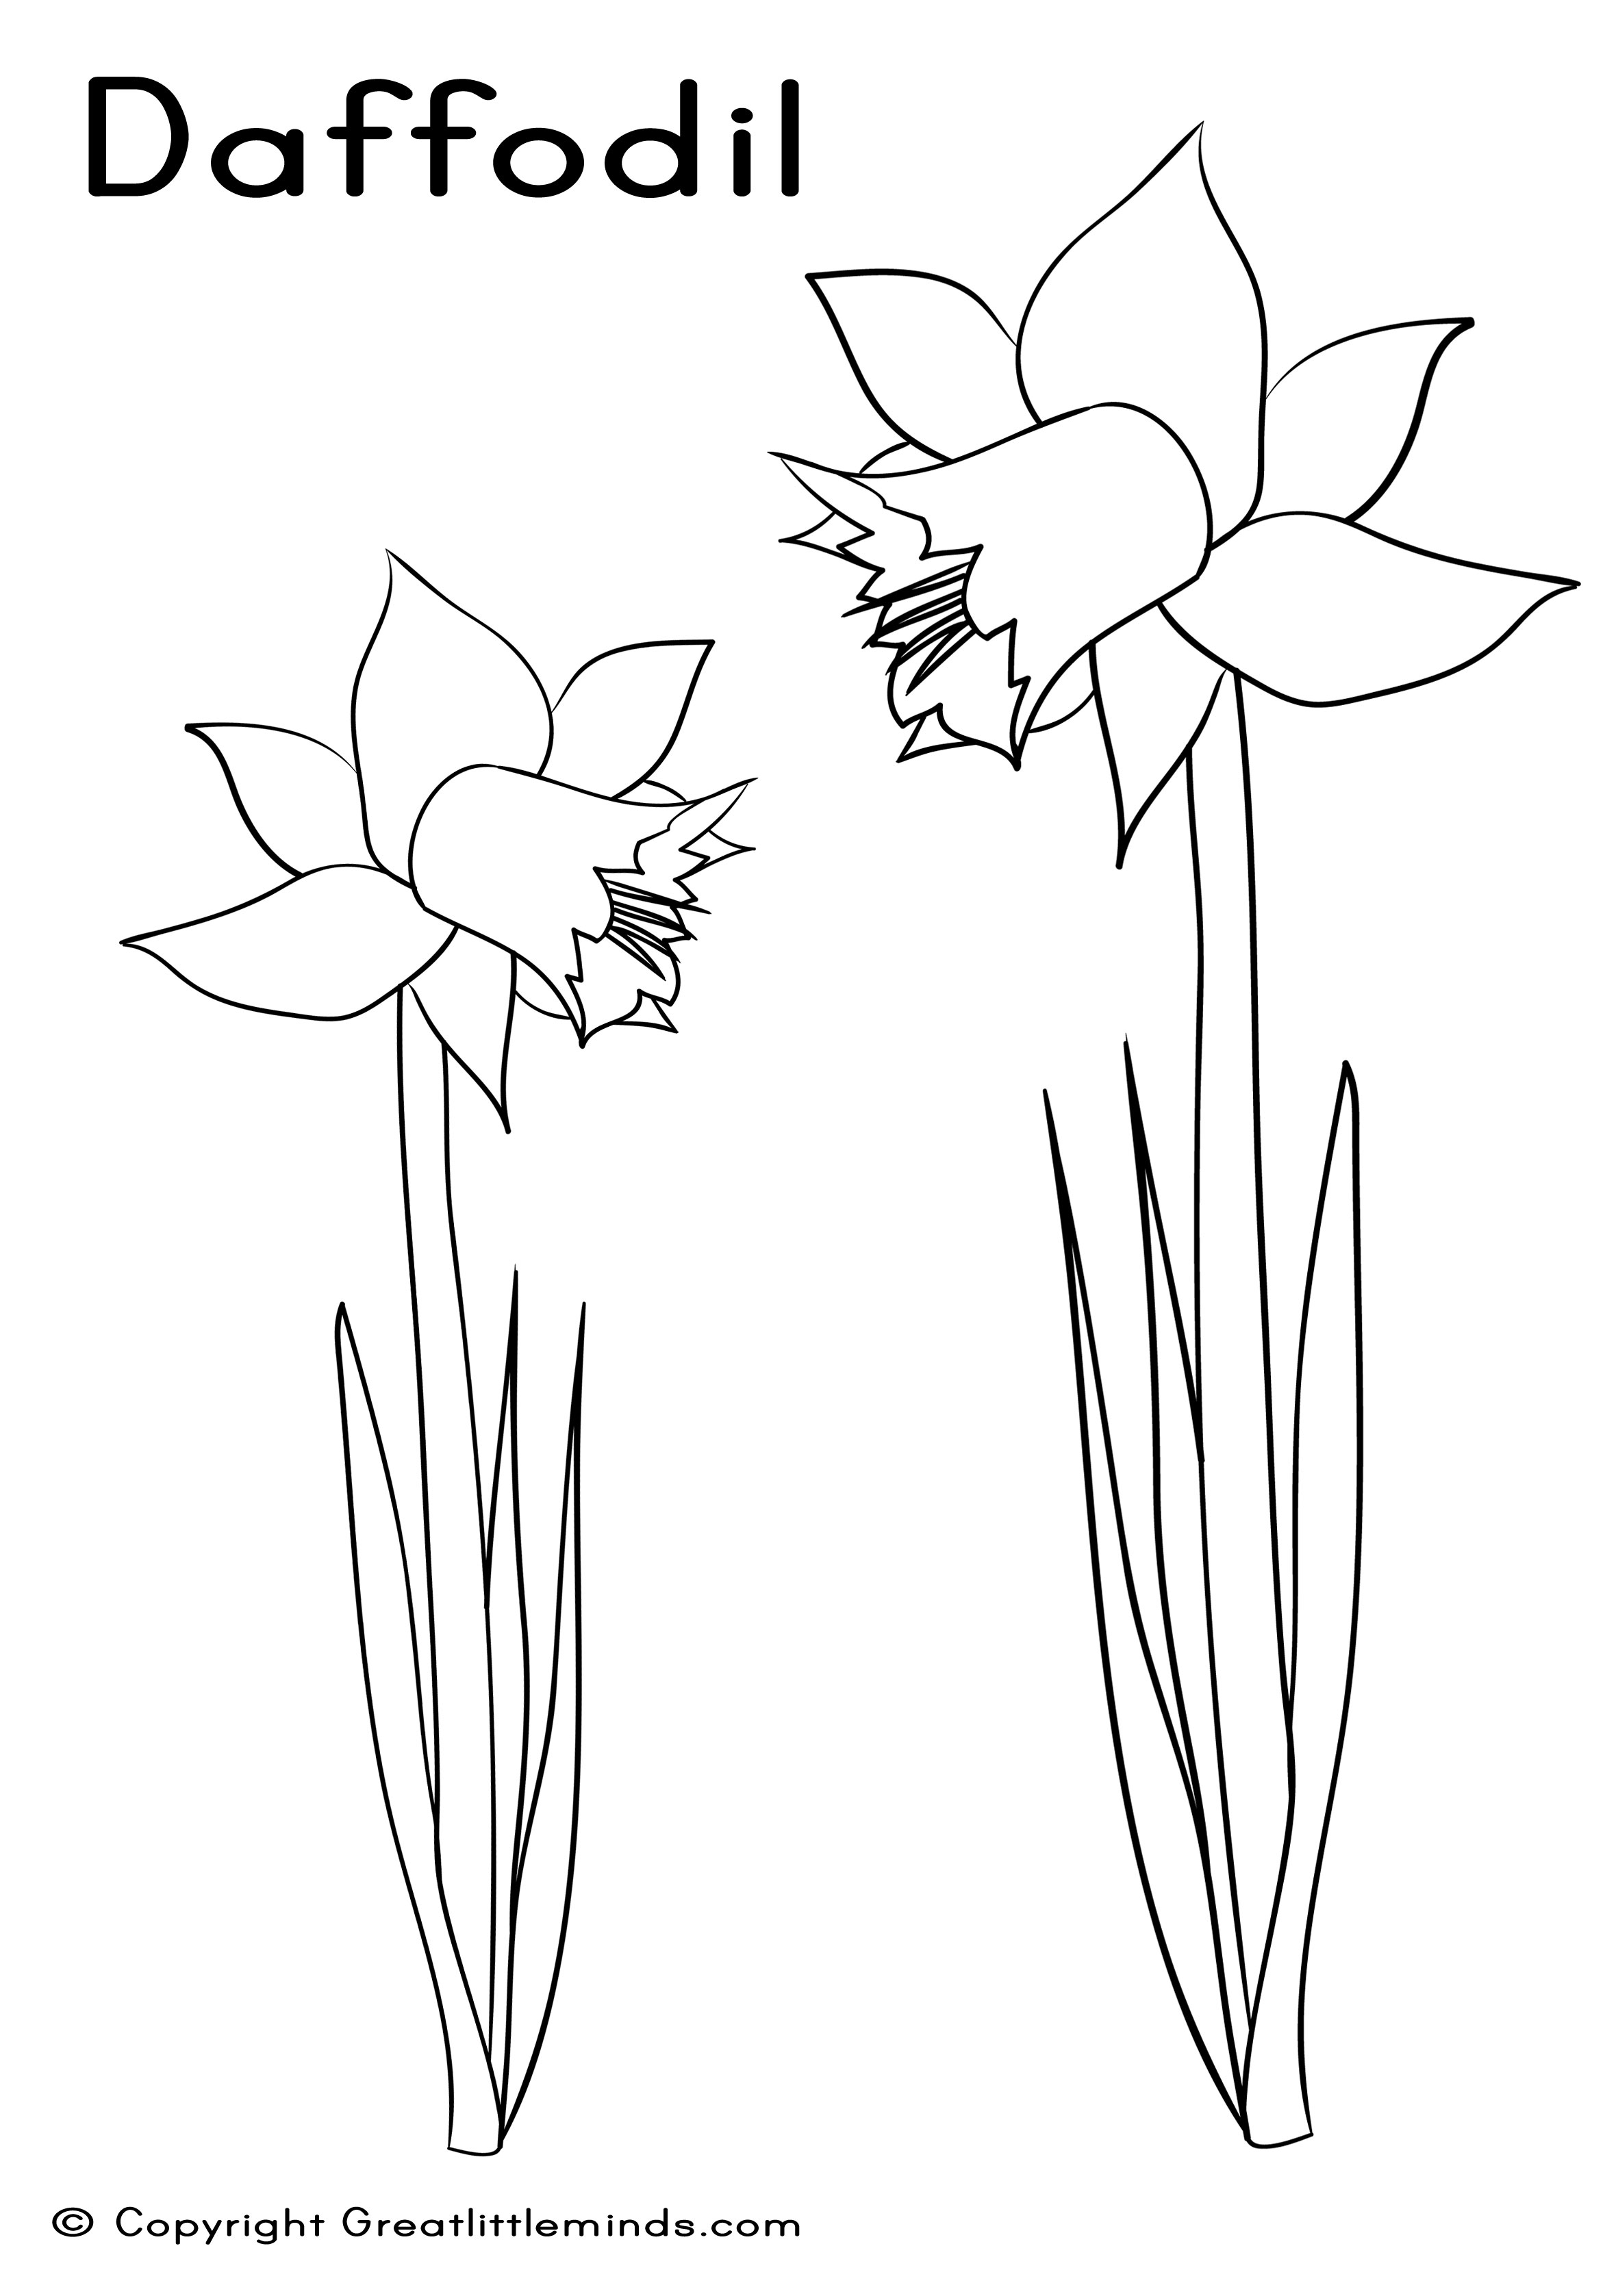 Daffodil Colouring Sheet Download Of Daffodil Coloring Pages Gallery